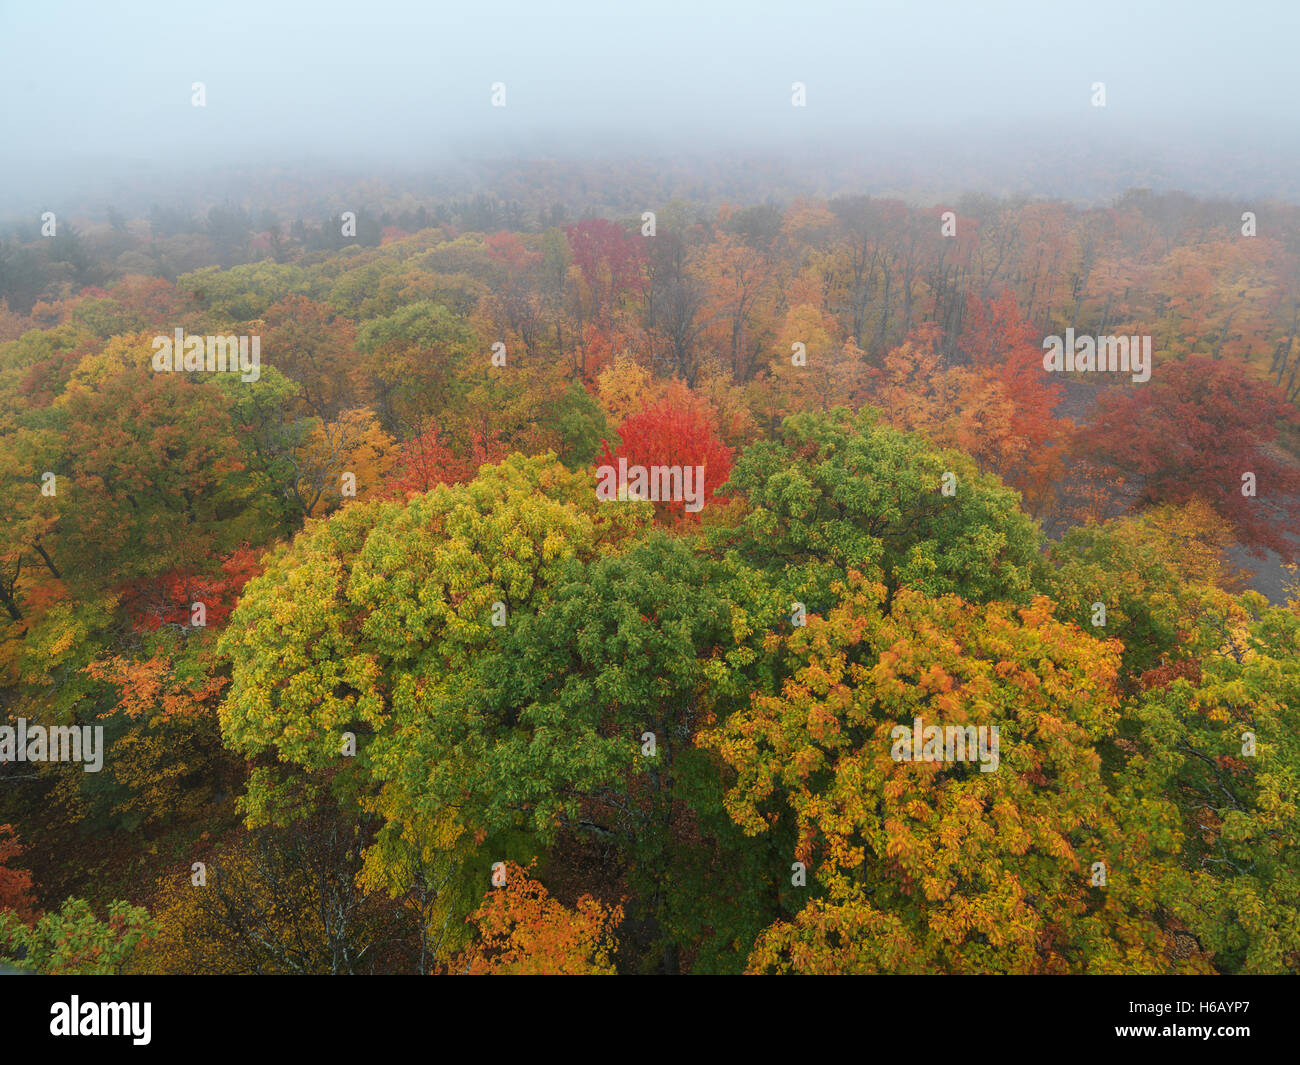 Aerial view fall nature scenery of colorful autumn trees in fog at Dorset, Muskoka, Ontario, Canada. - Stock Image